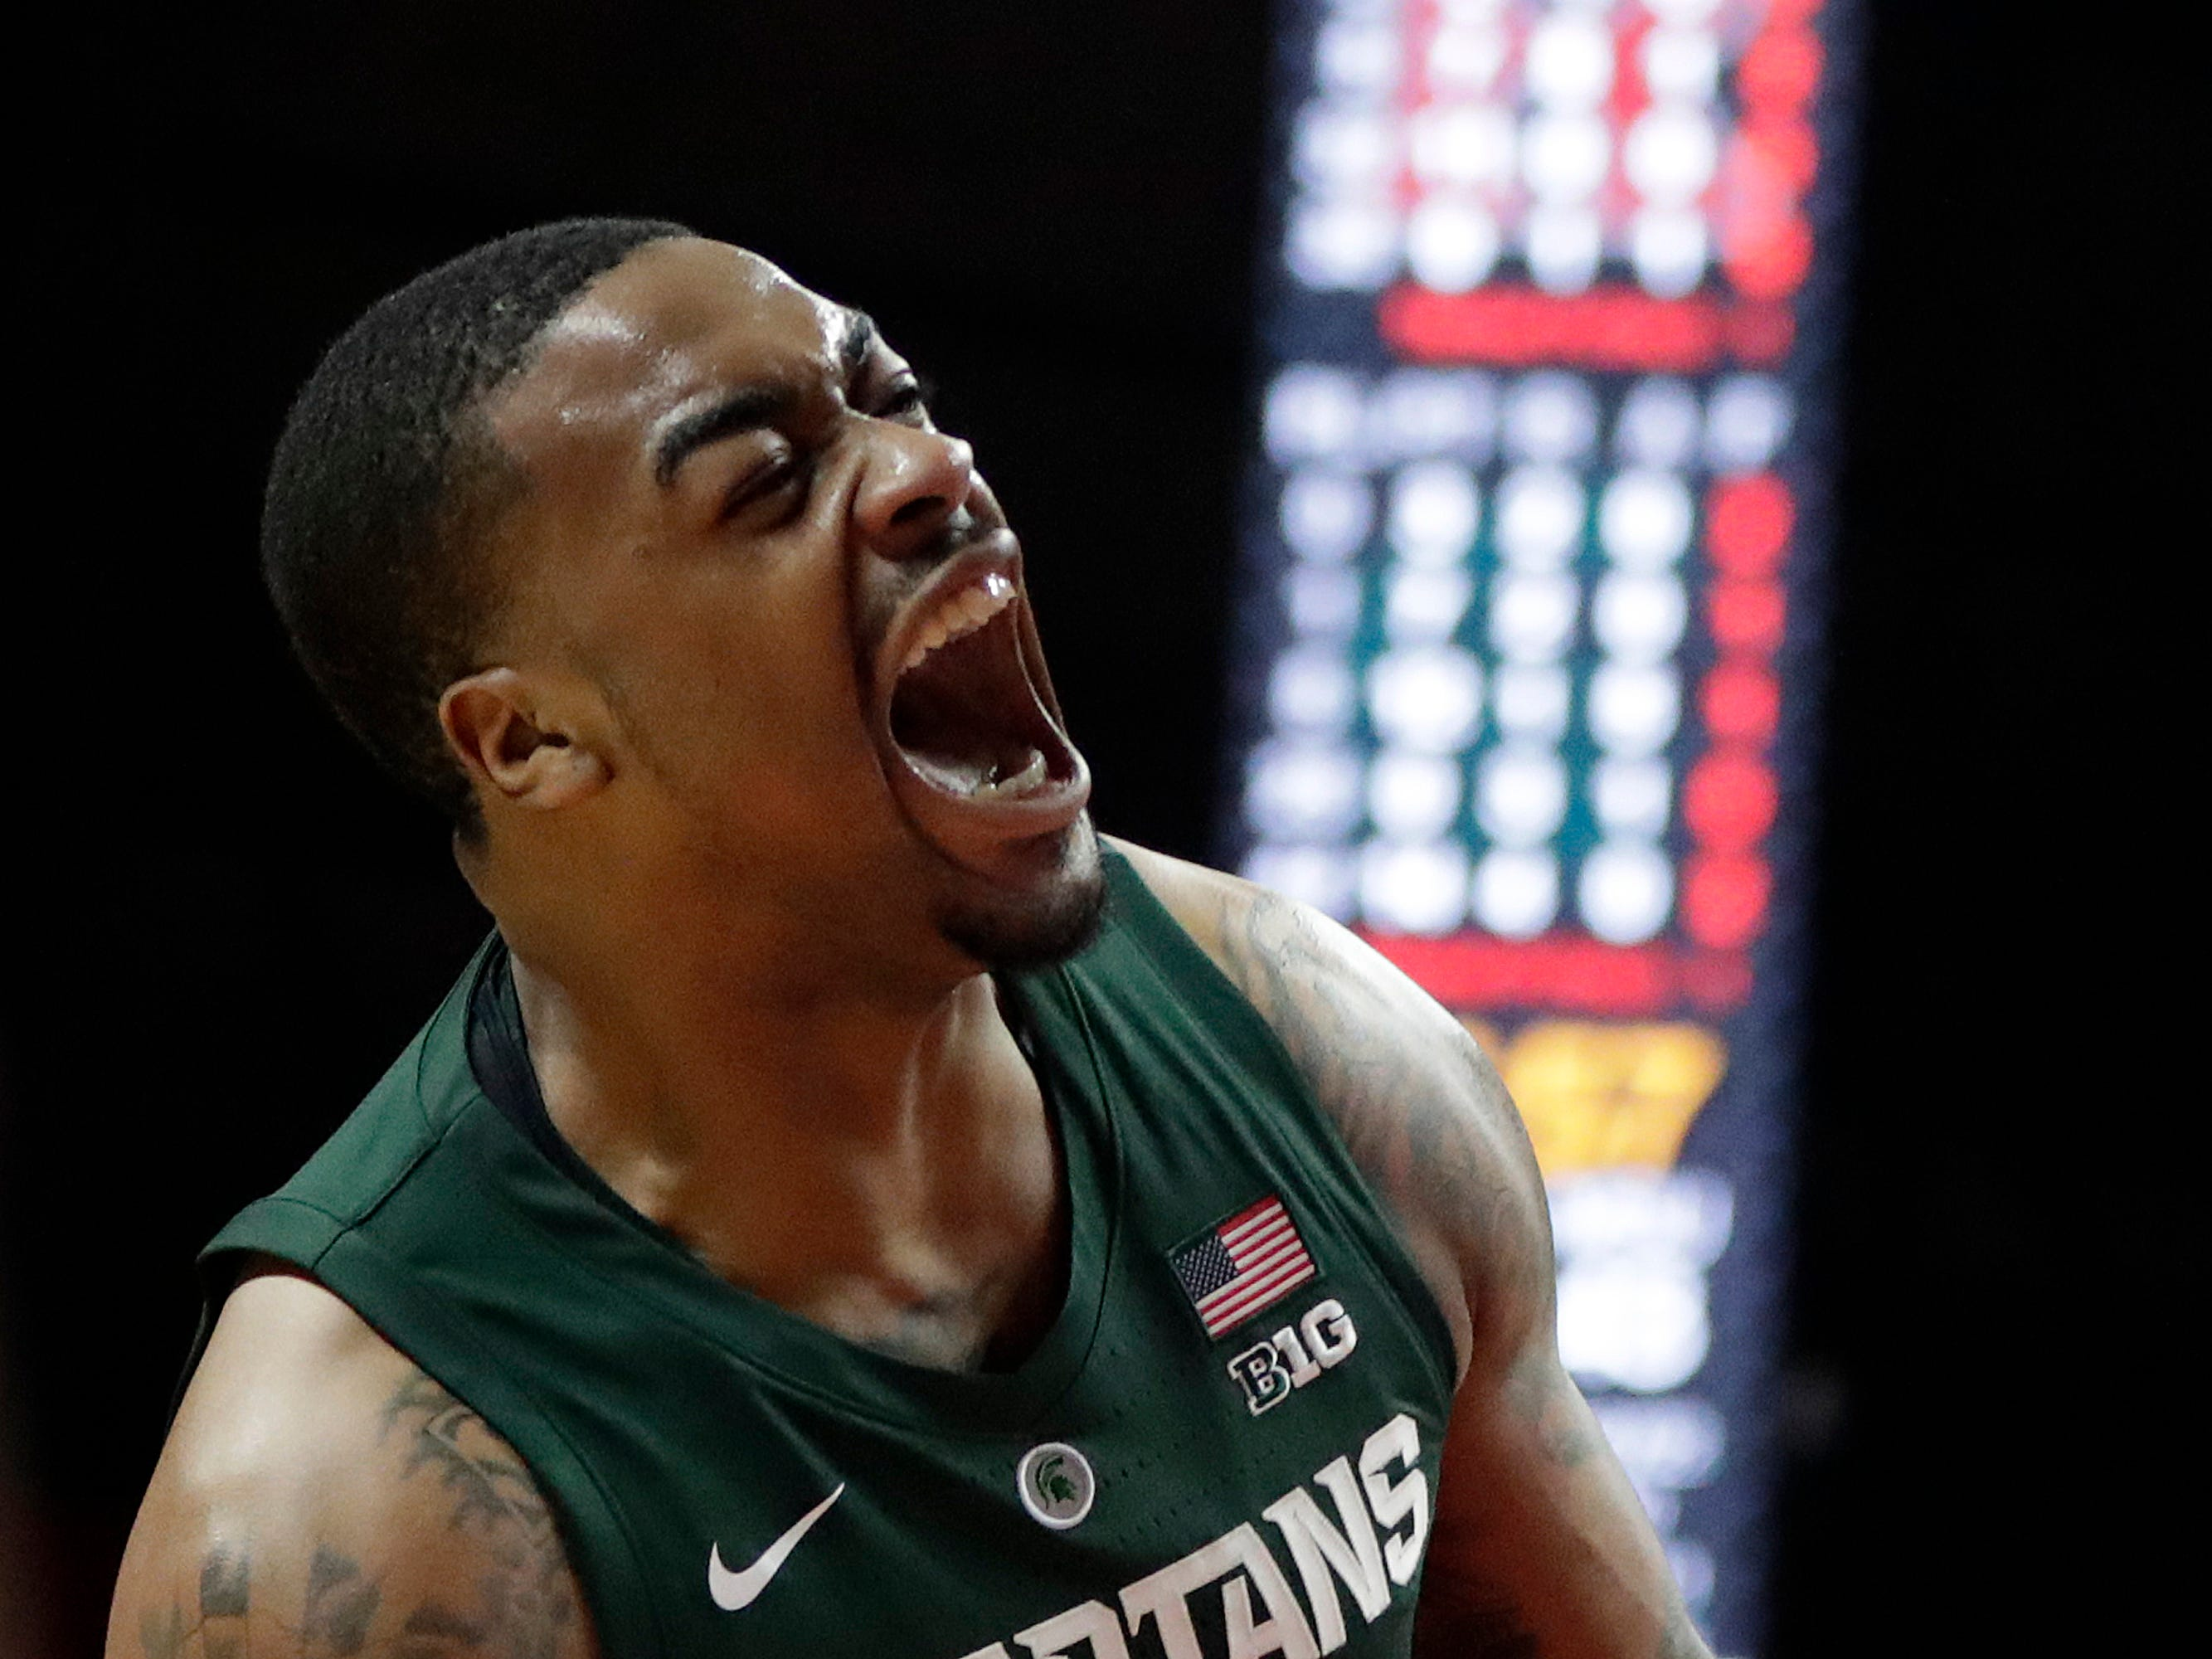 Michigan State forward Nick Ward reacts after dunking against Rutgers during the second half of an NCAA college basketball game, Friday, Nov. 30, 2018, in Piscataway, N.J.